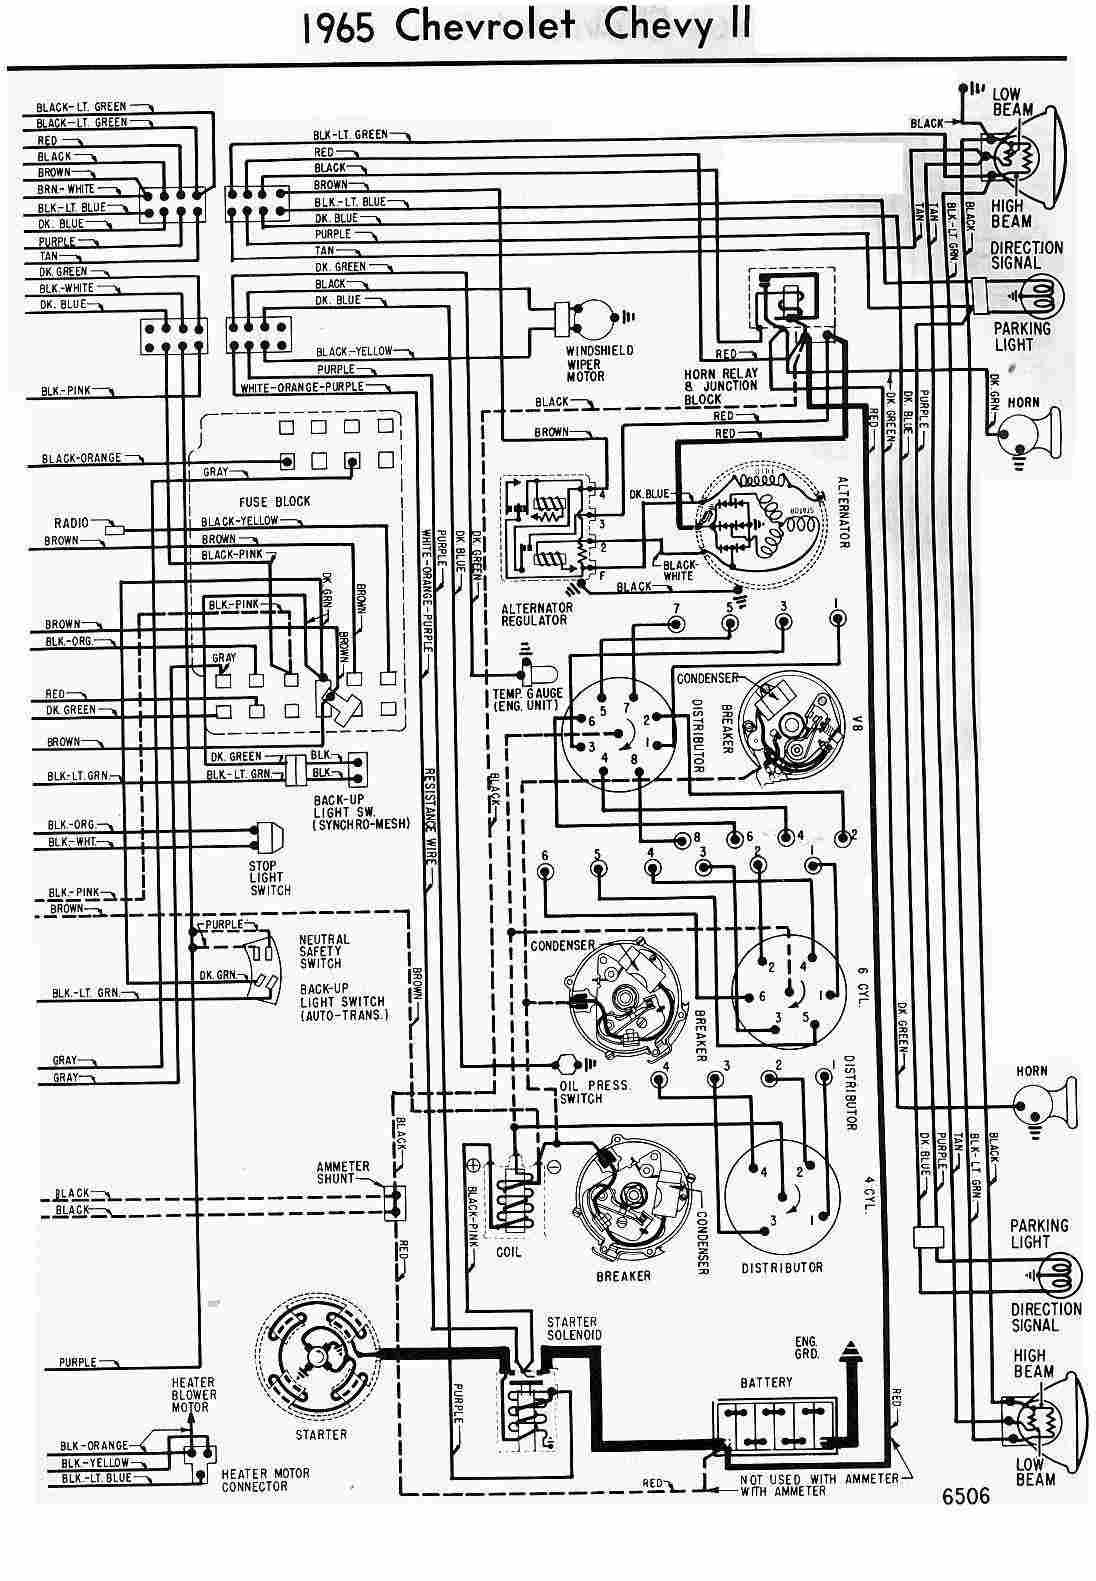 1965 chevy ii nova wiring diagrams wiring diagram todays rh 12 13 9 1813weddingbarn com 1972 [ 1096 x 1581 Pixel ]